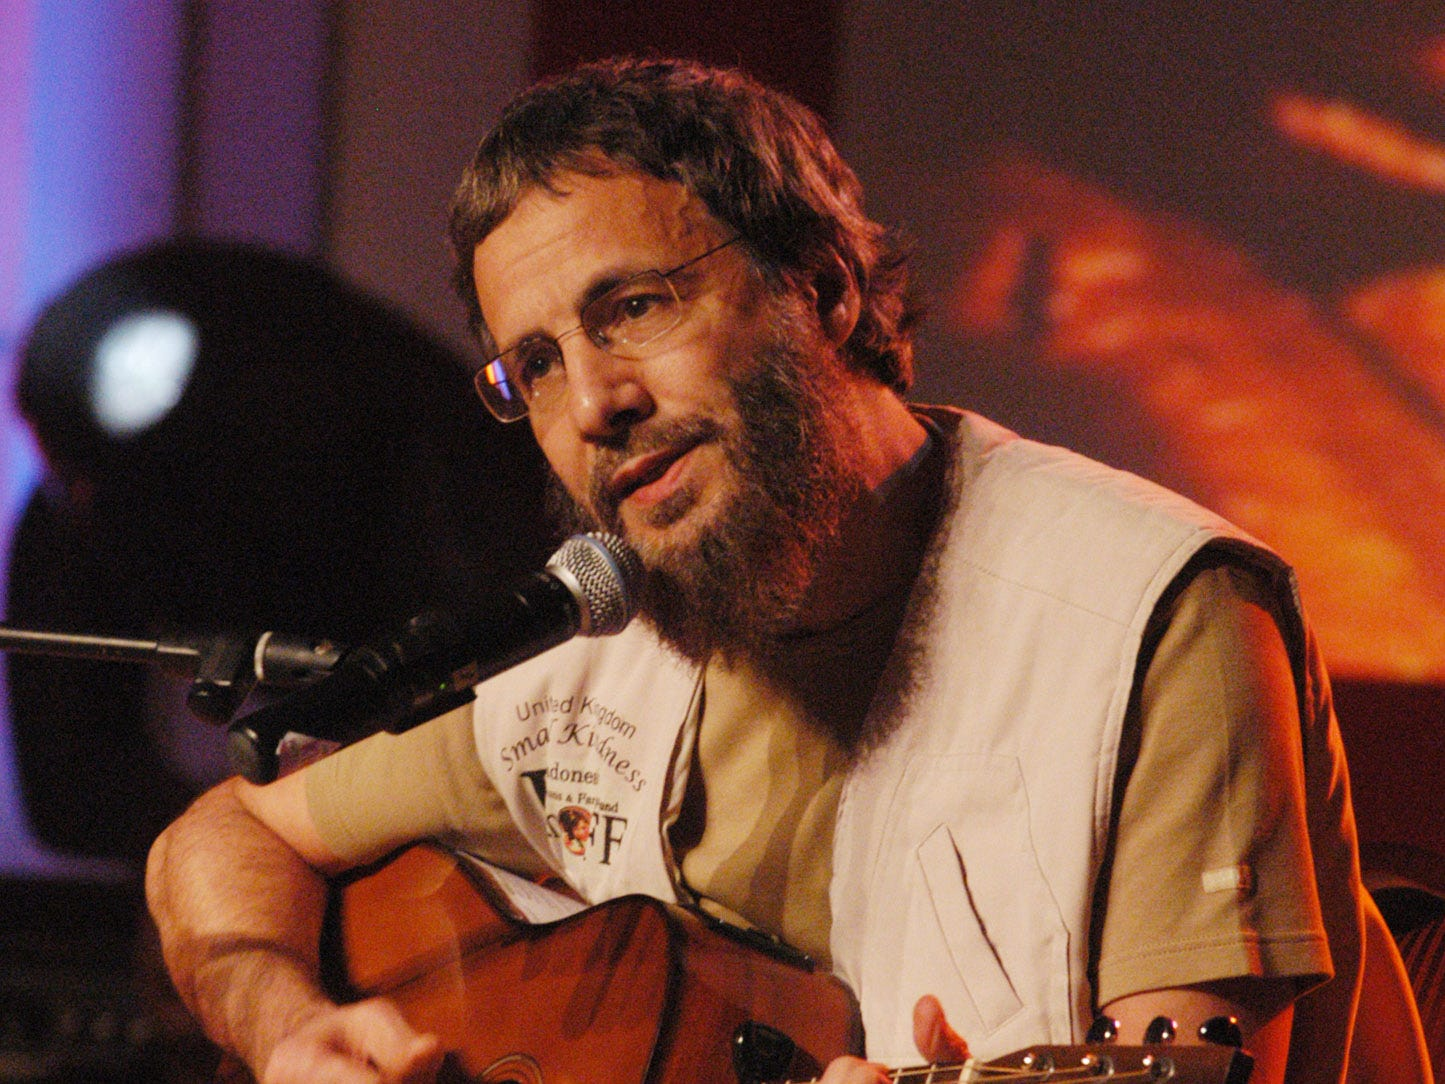 Singer Yusuf Islam, formerly  known as Cat Stevens, last played Milwaukee at what is now the Marcus Center for the Performing Arts in 1971.